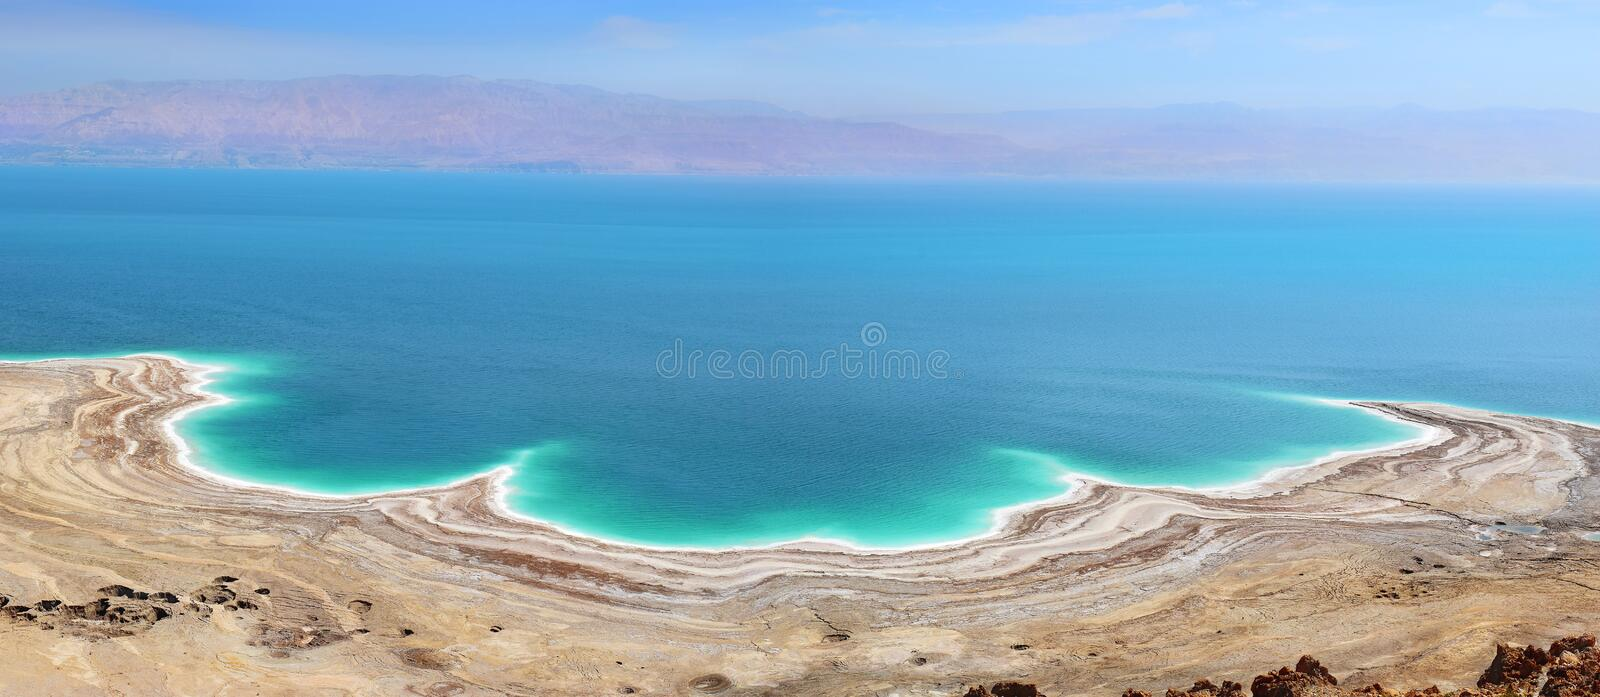 Landscape of the Dead Sea, Israel royalty free stock images